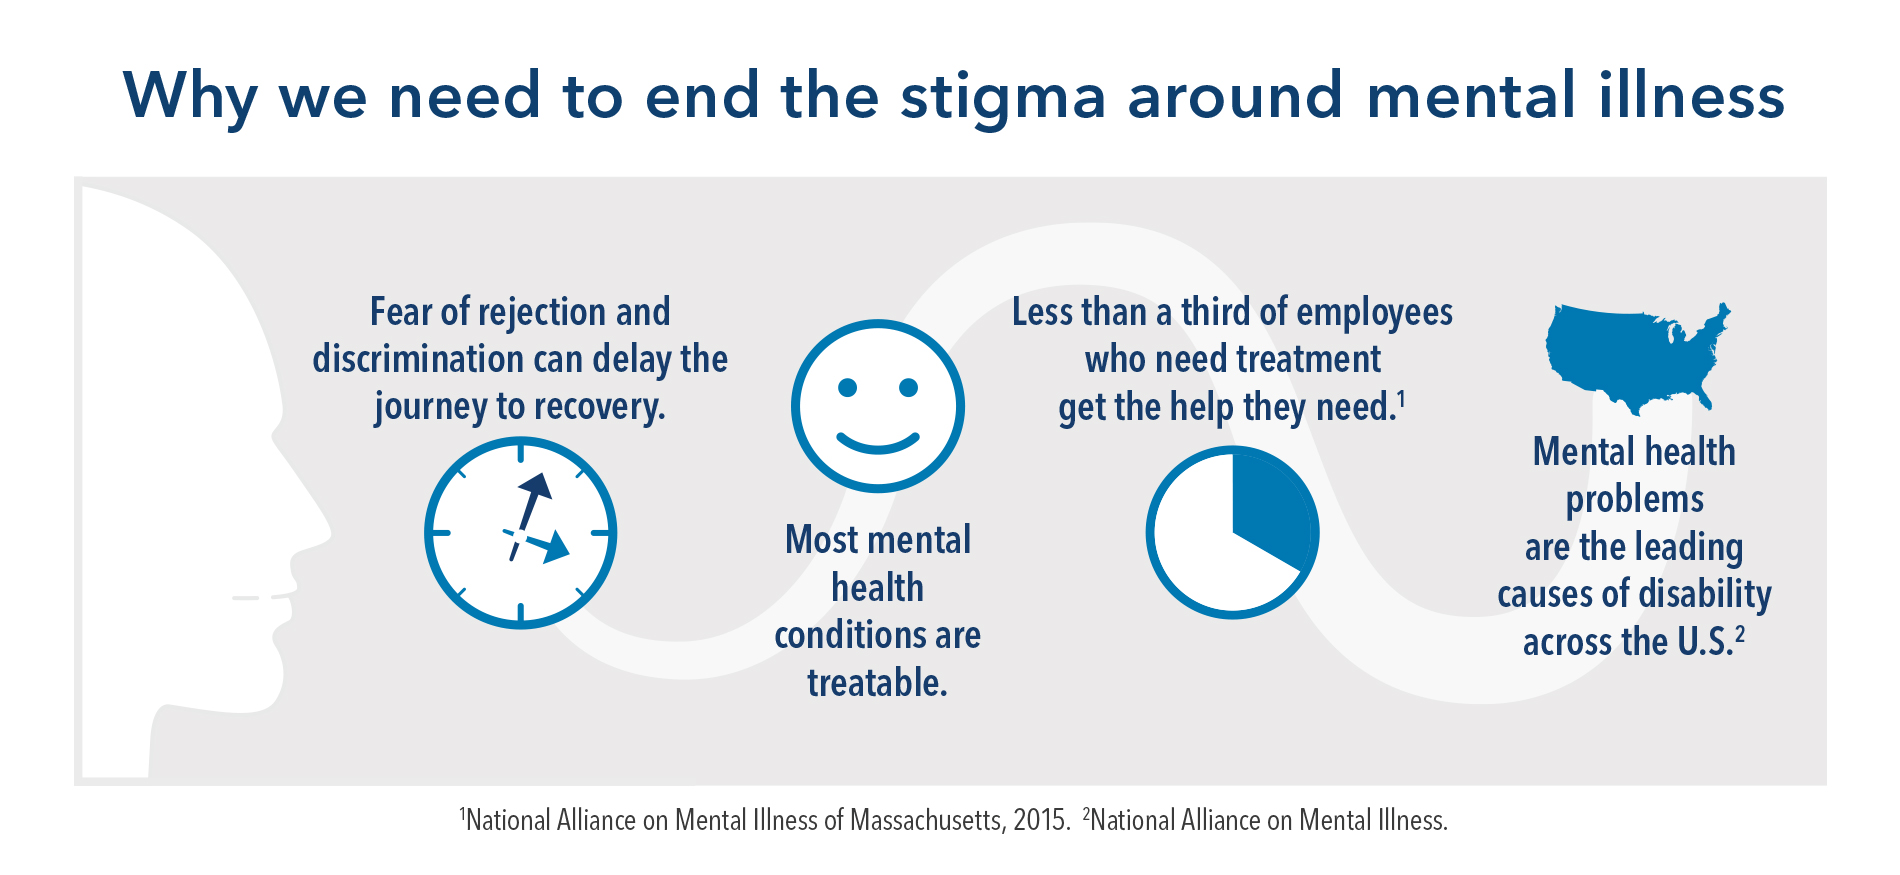 Kaiser-Permanente-Why-We-Need-to-End-the-Stigma-Around-Mental-Illness